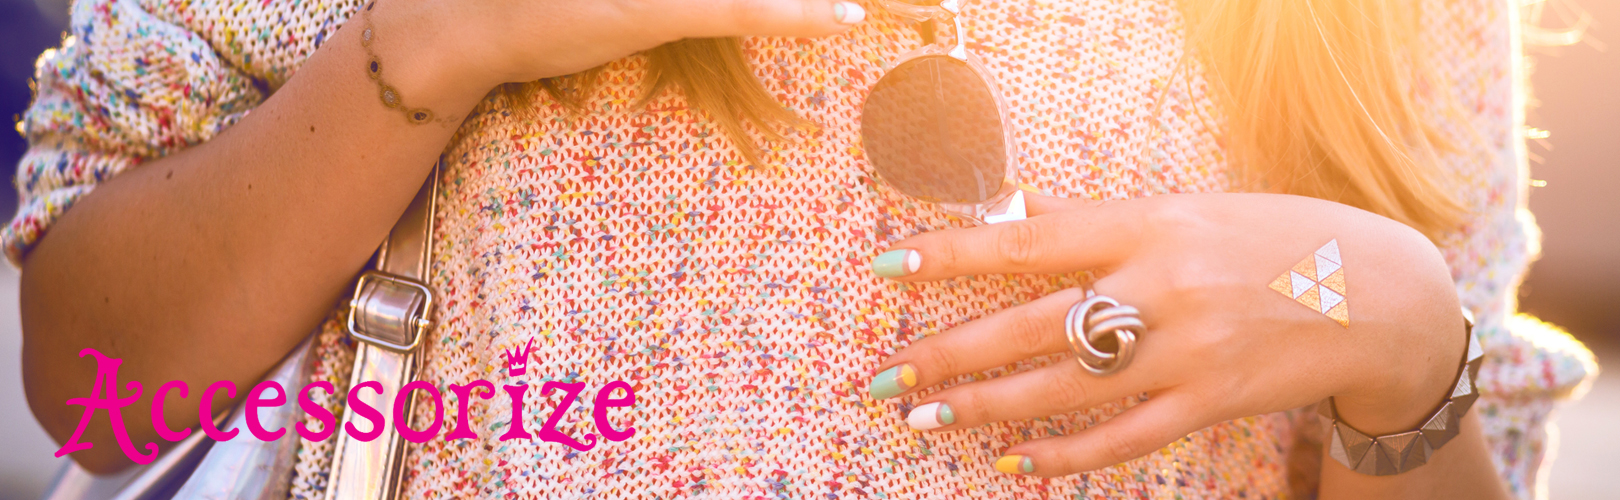 £59 for a £100 Gift Card on your Accessorize shopping